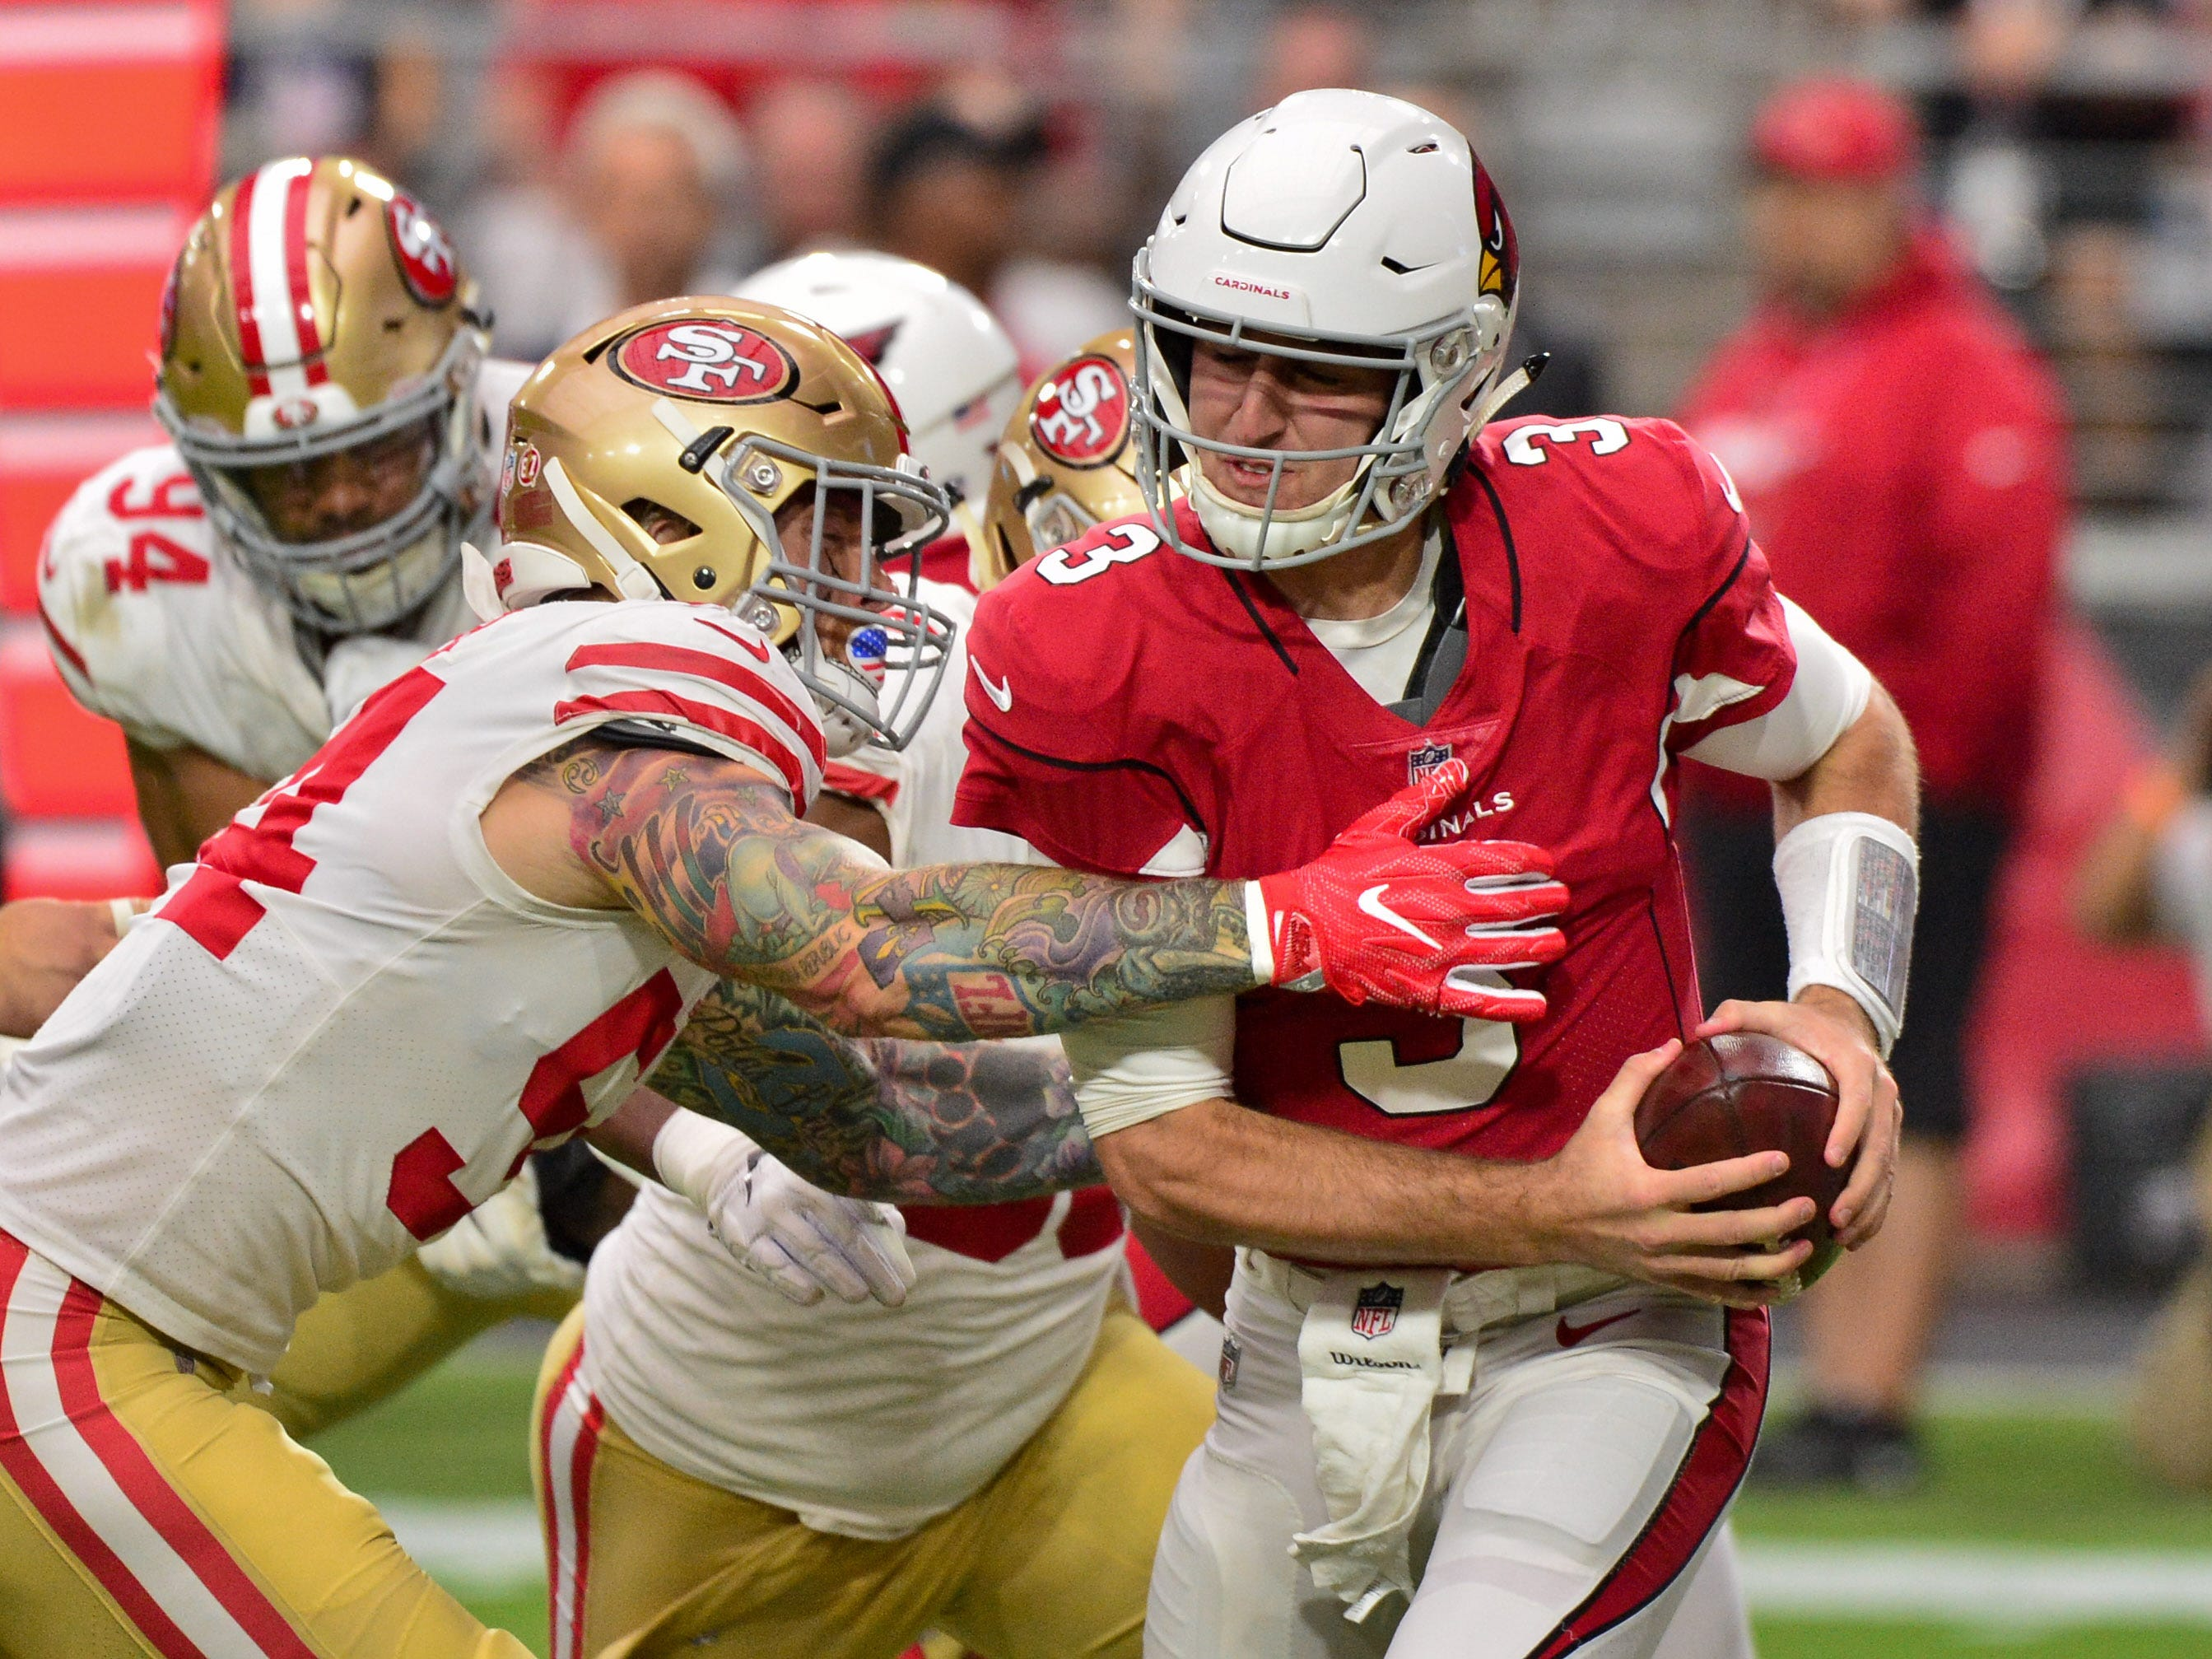 Oct 28, 2018; Glendale, AZ, USA; San Francisco 49ers defensive end Cassius Marsh (54) tackles Arizona Cardinals quarterback Josh Rosen (3) in the end zone resulting in a safety during the first half at State Farm Stadium.